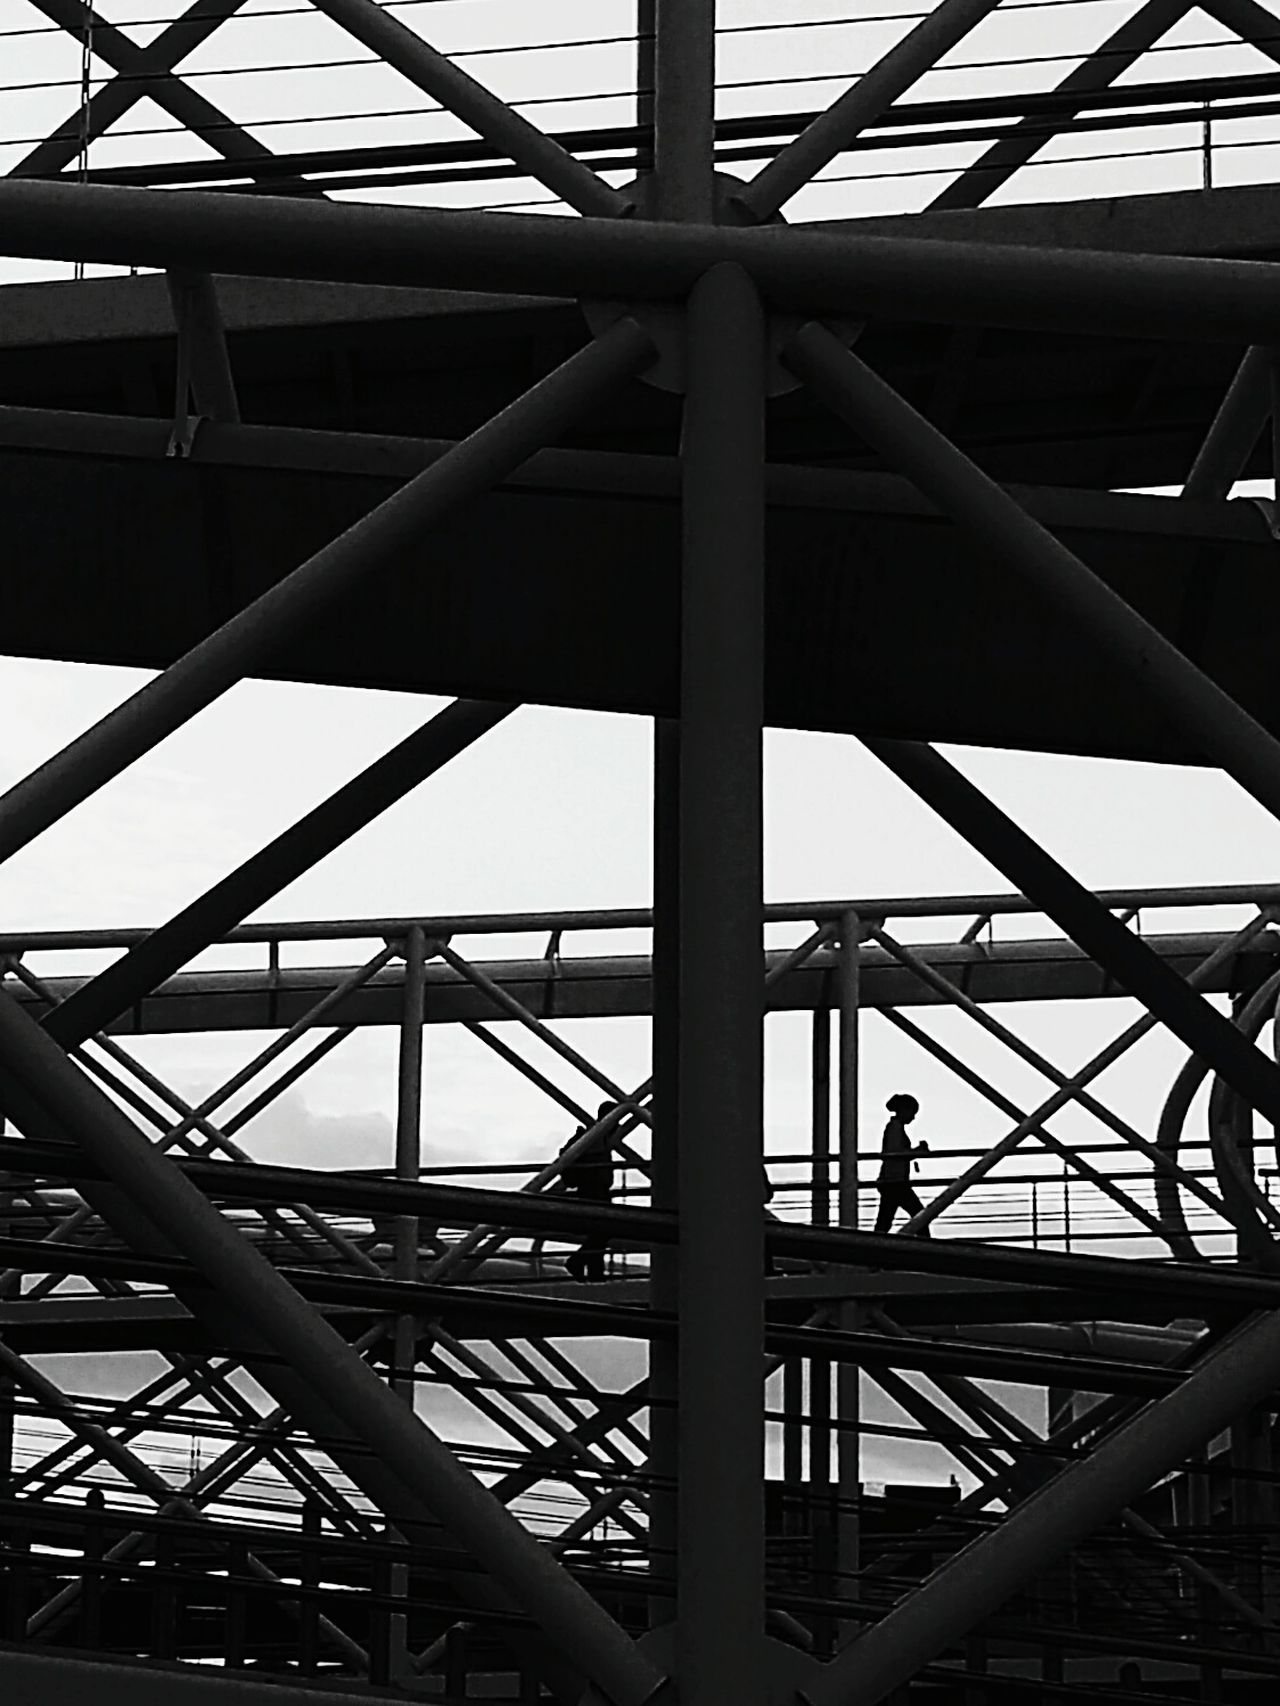 Day Built Structure Architecture Outdoors Sky No People Bridge - Man Made Structure Street Photography Streetphotography Urban Exploration Urban Geometry Blackandwhite Black And White Monochrome